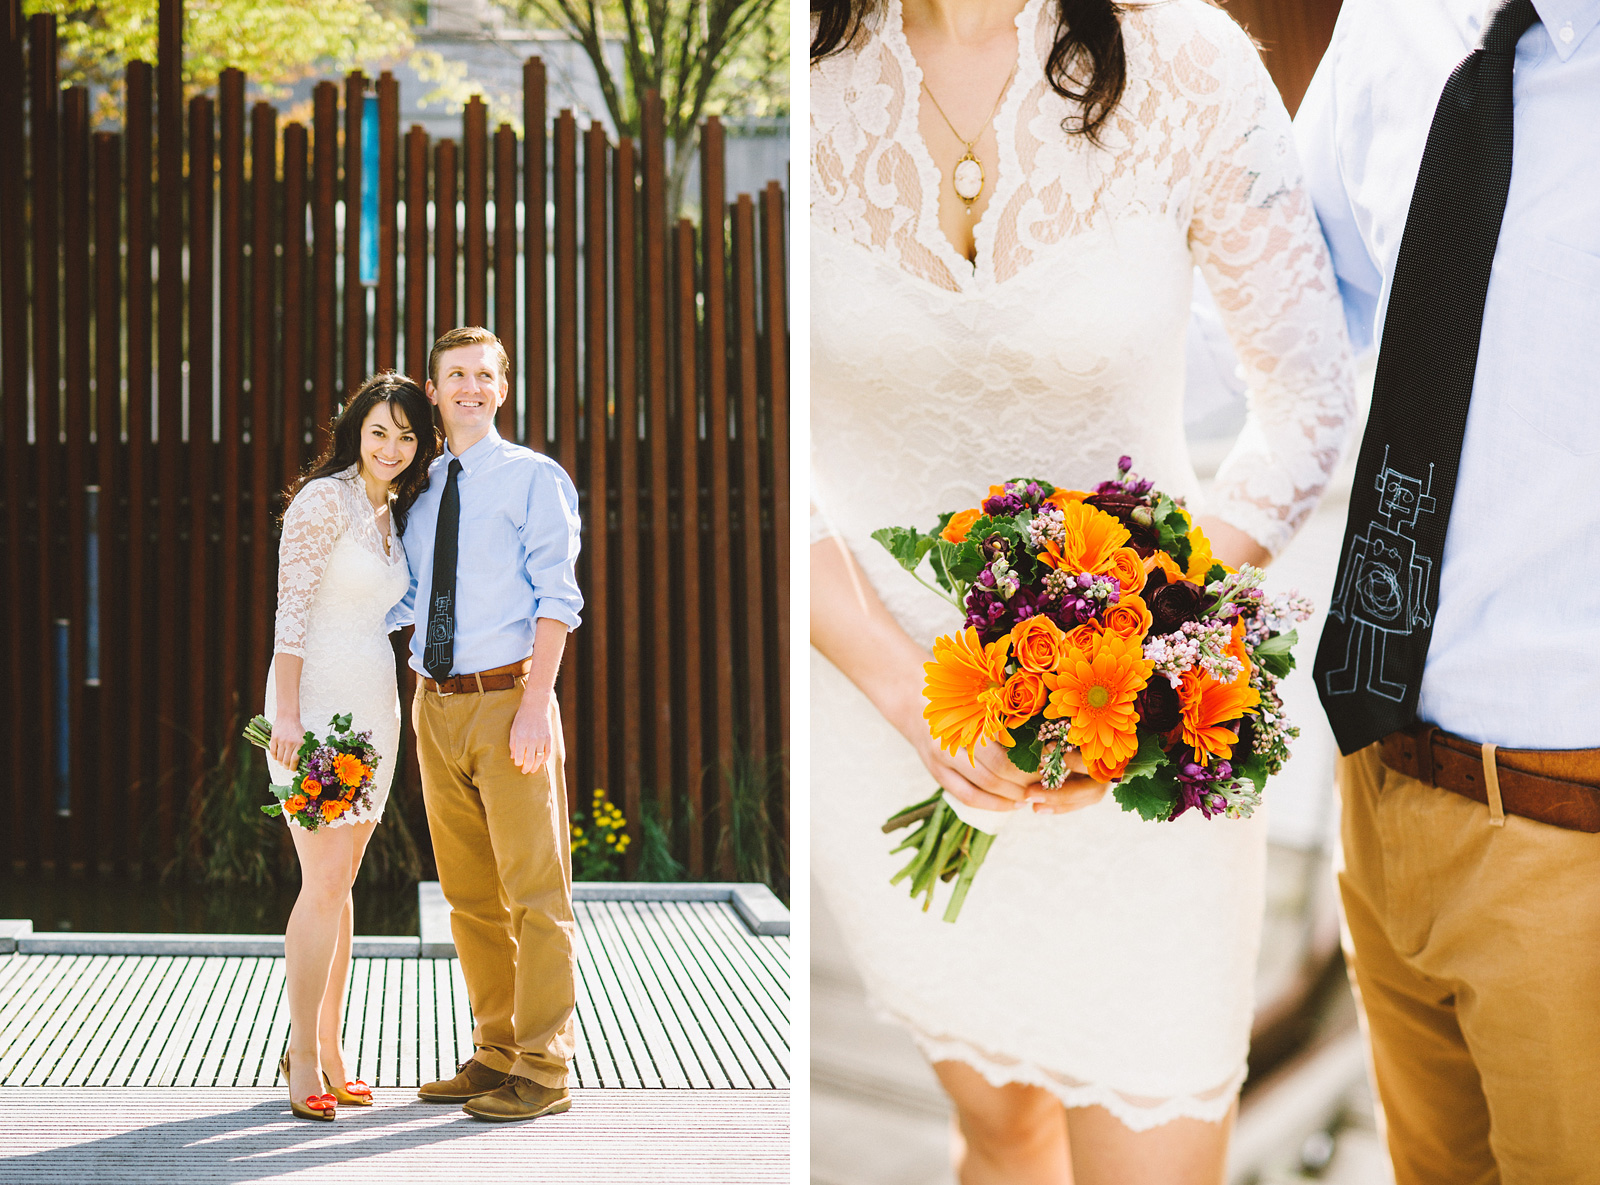 Portraits of Bride and Groom at Tanner Springs Park | Portland Courthouse Wedding